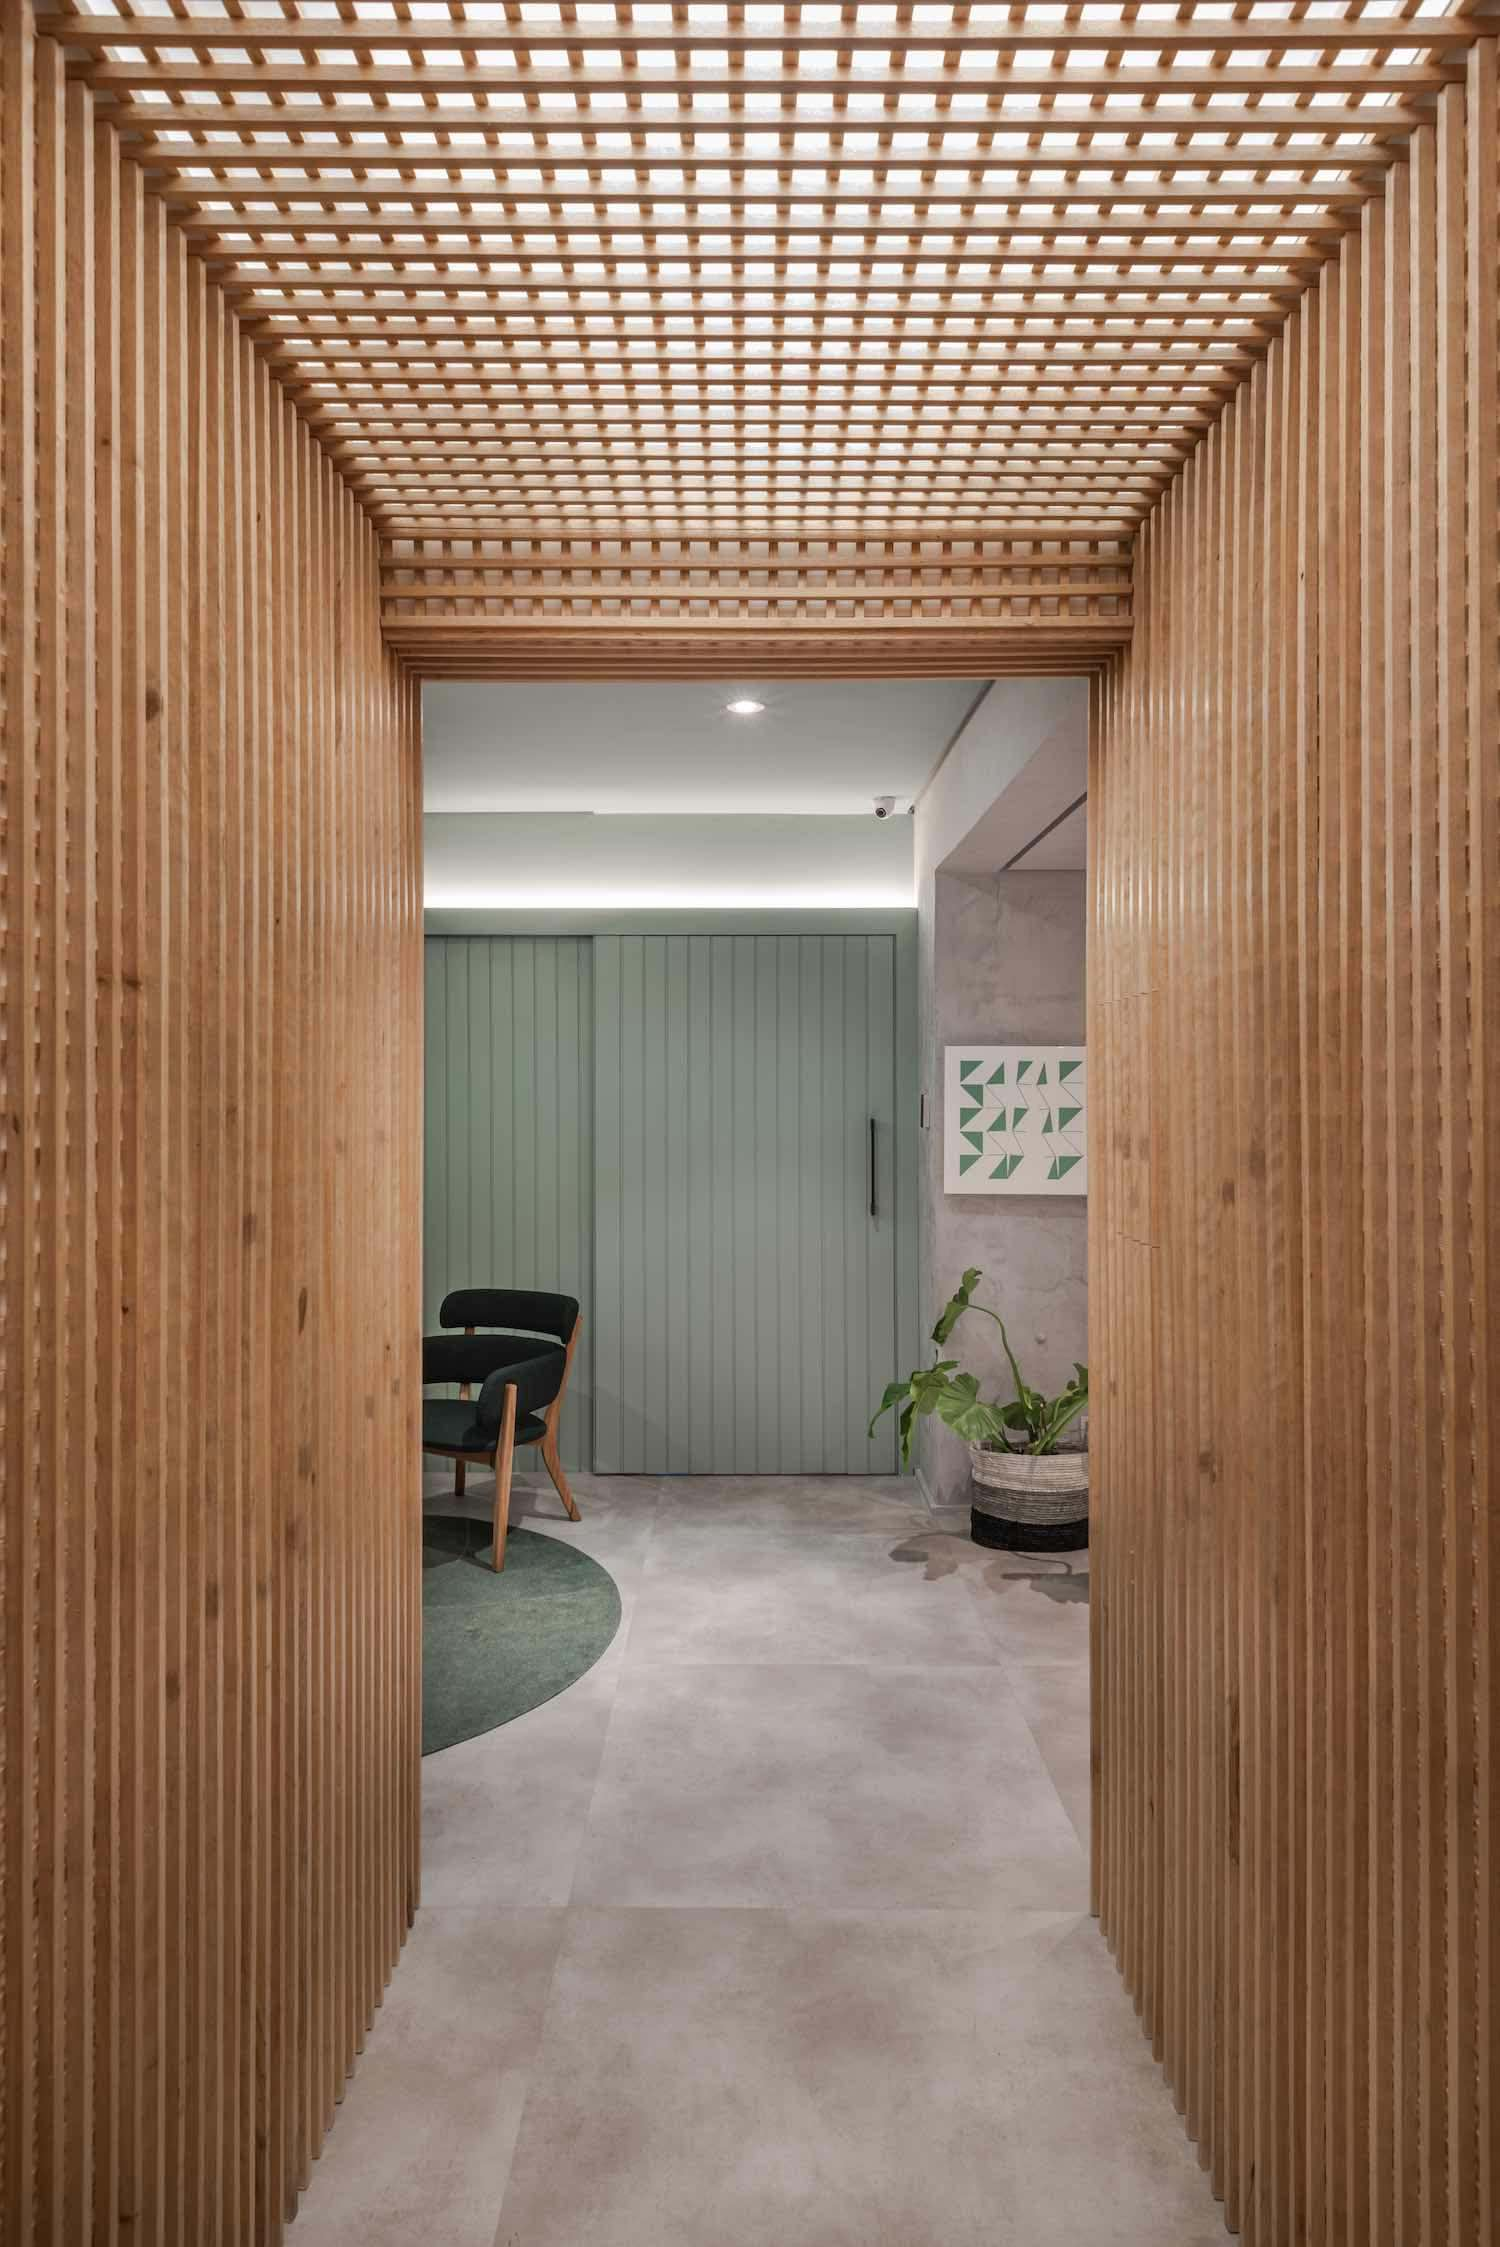 wall and ceiling finished with wooden material